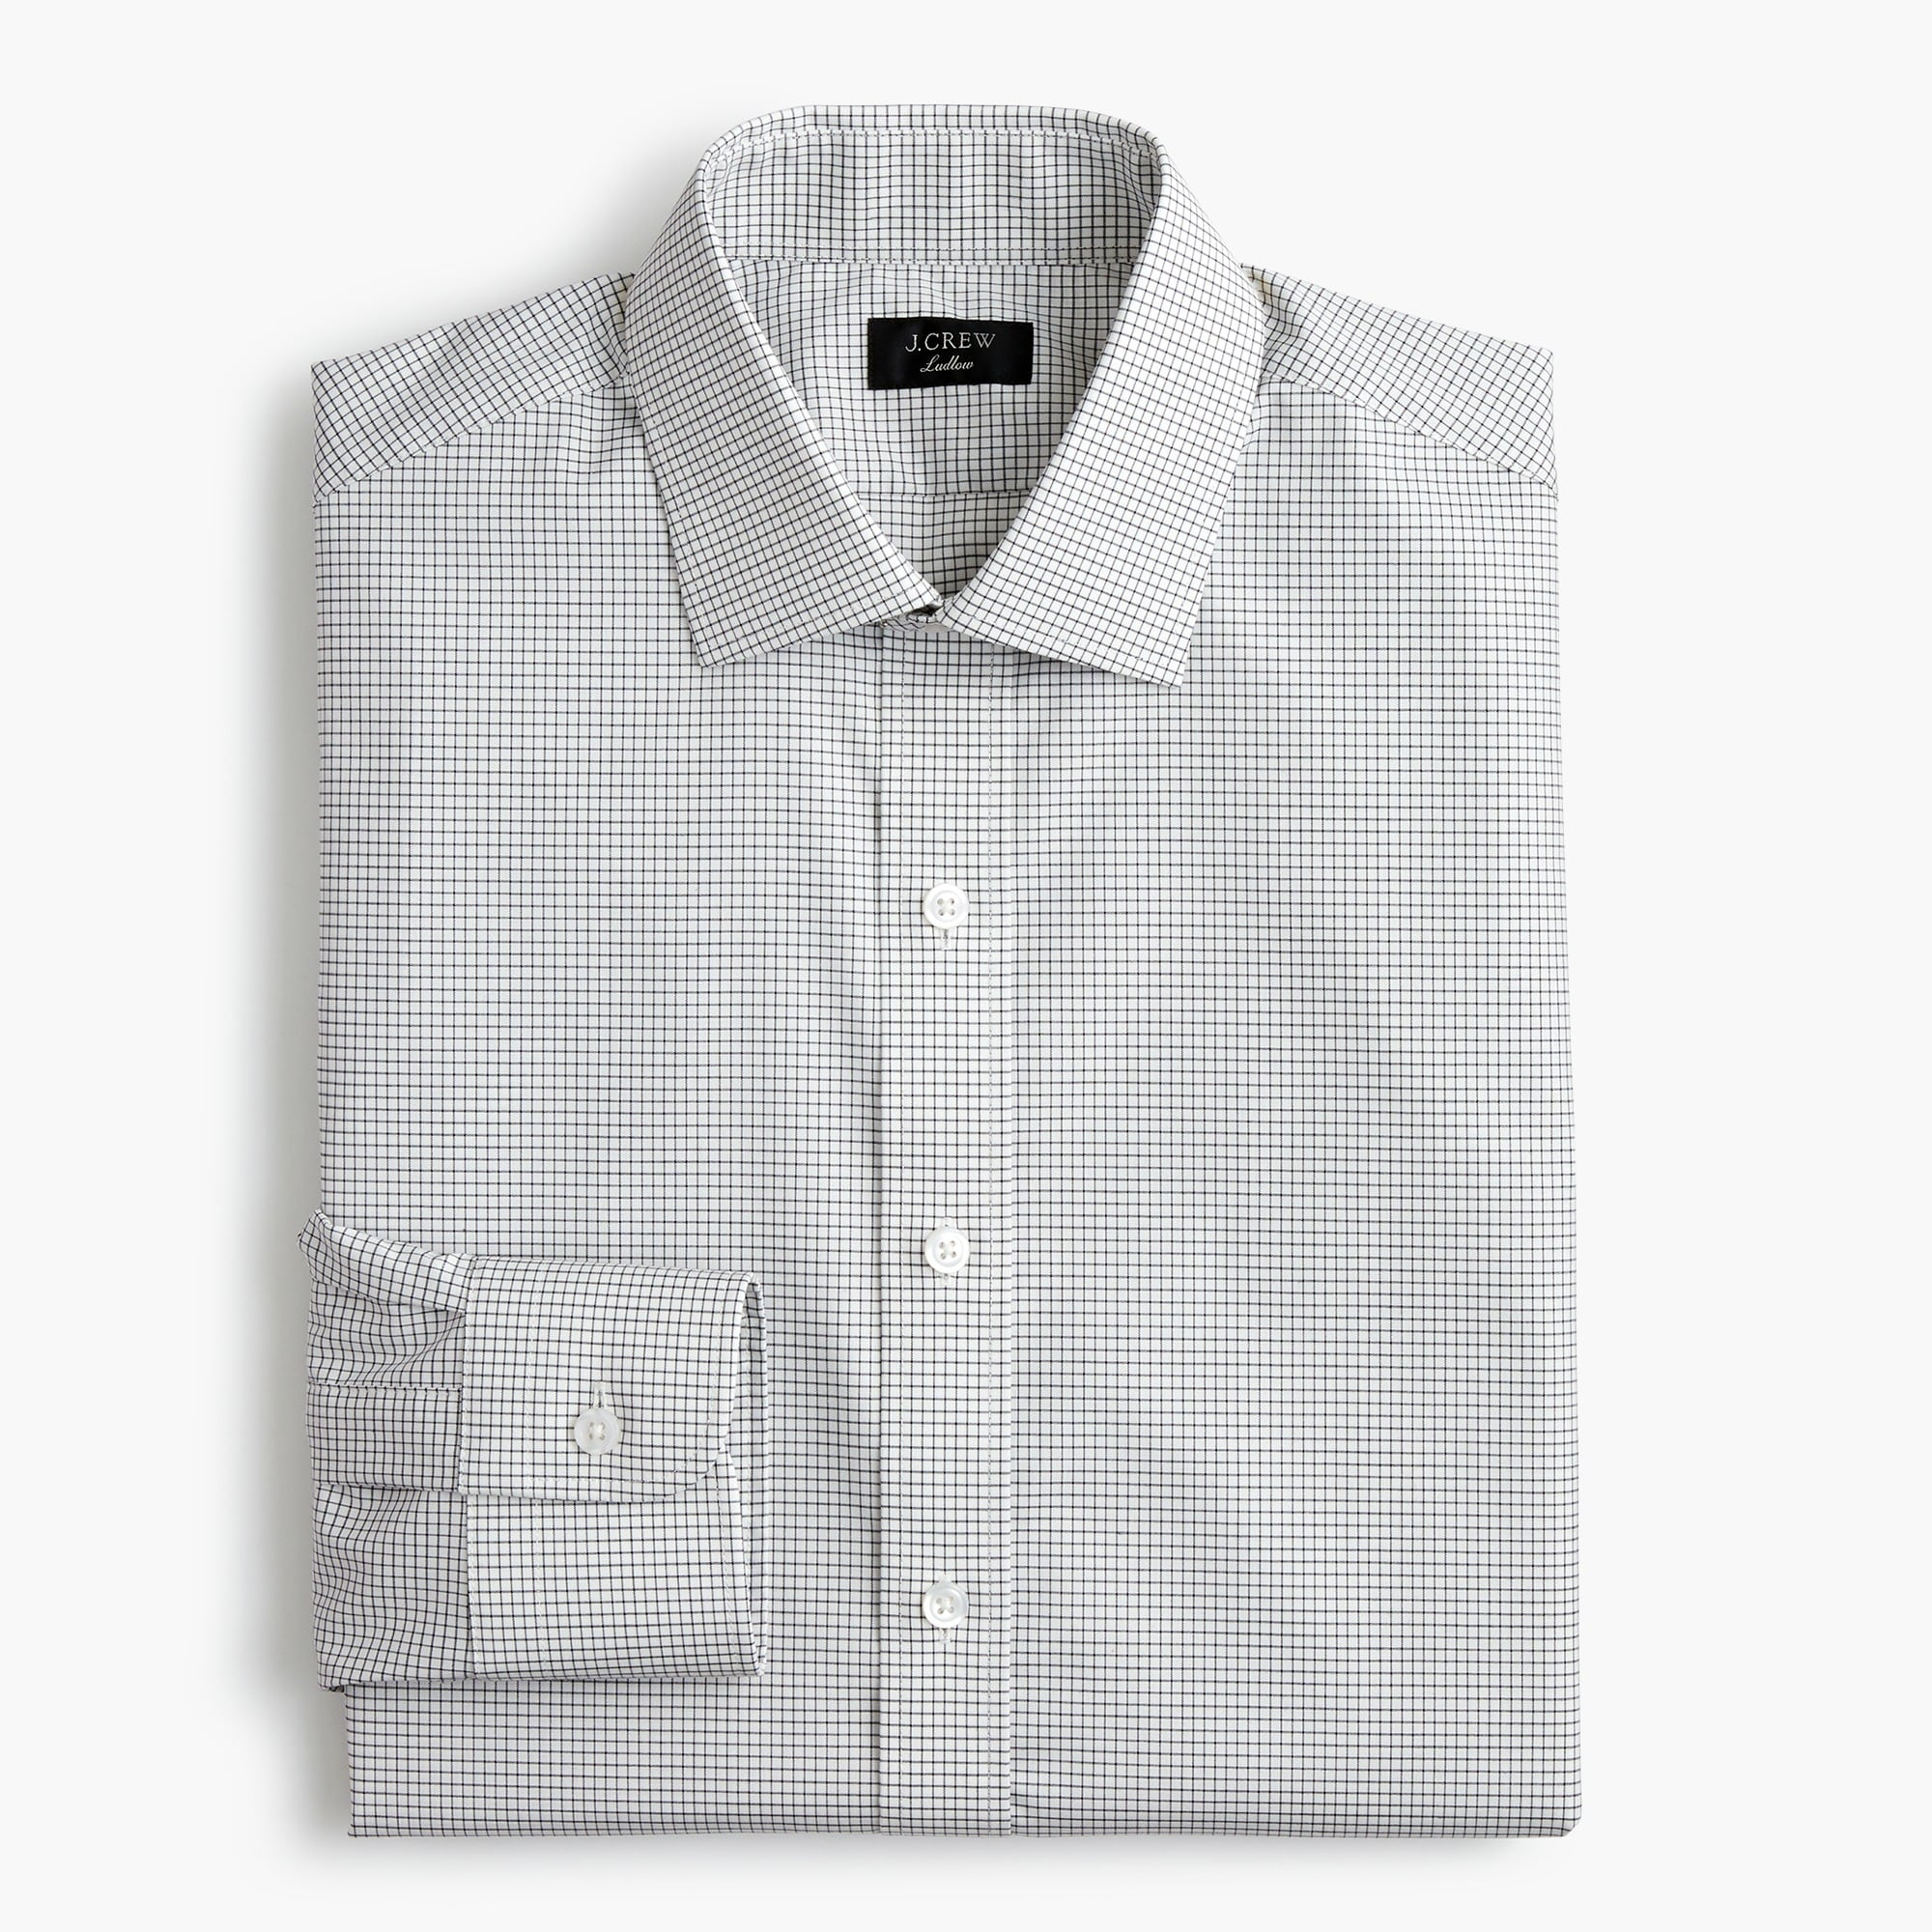 Classic Ludlow stretch two-ply easy-care cotton dress shirt in microcheck